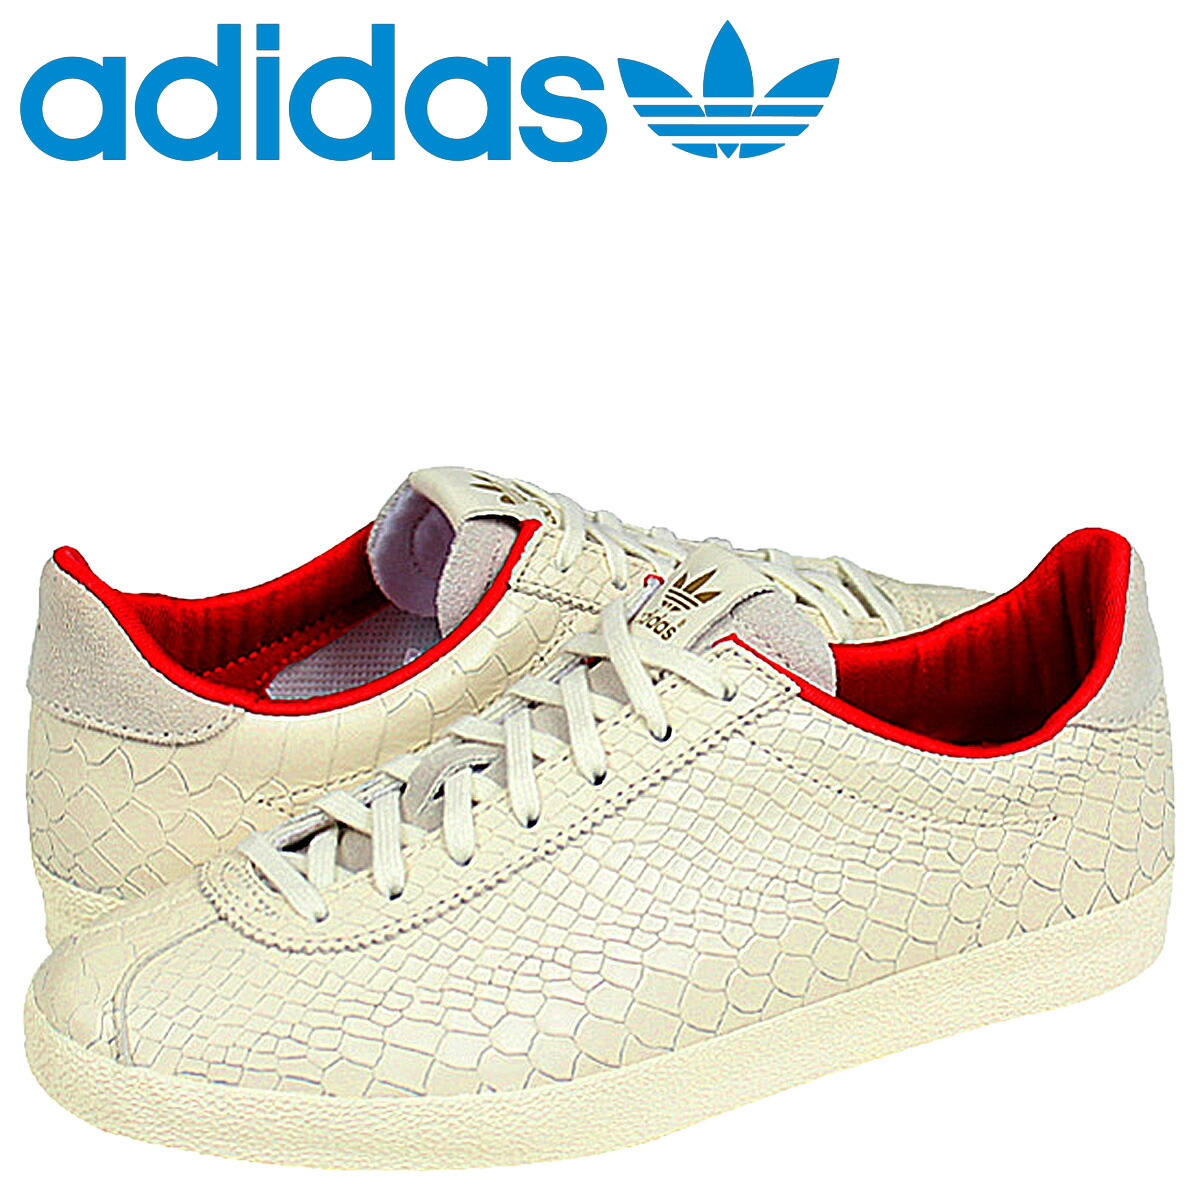 adidas gazelle dragon